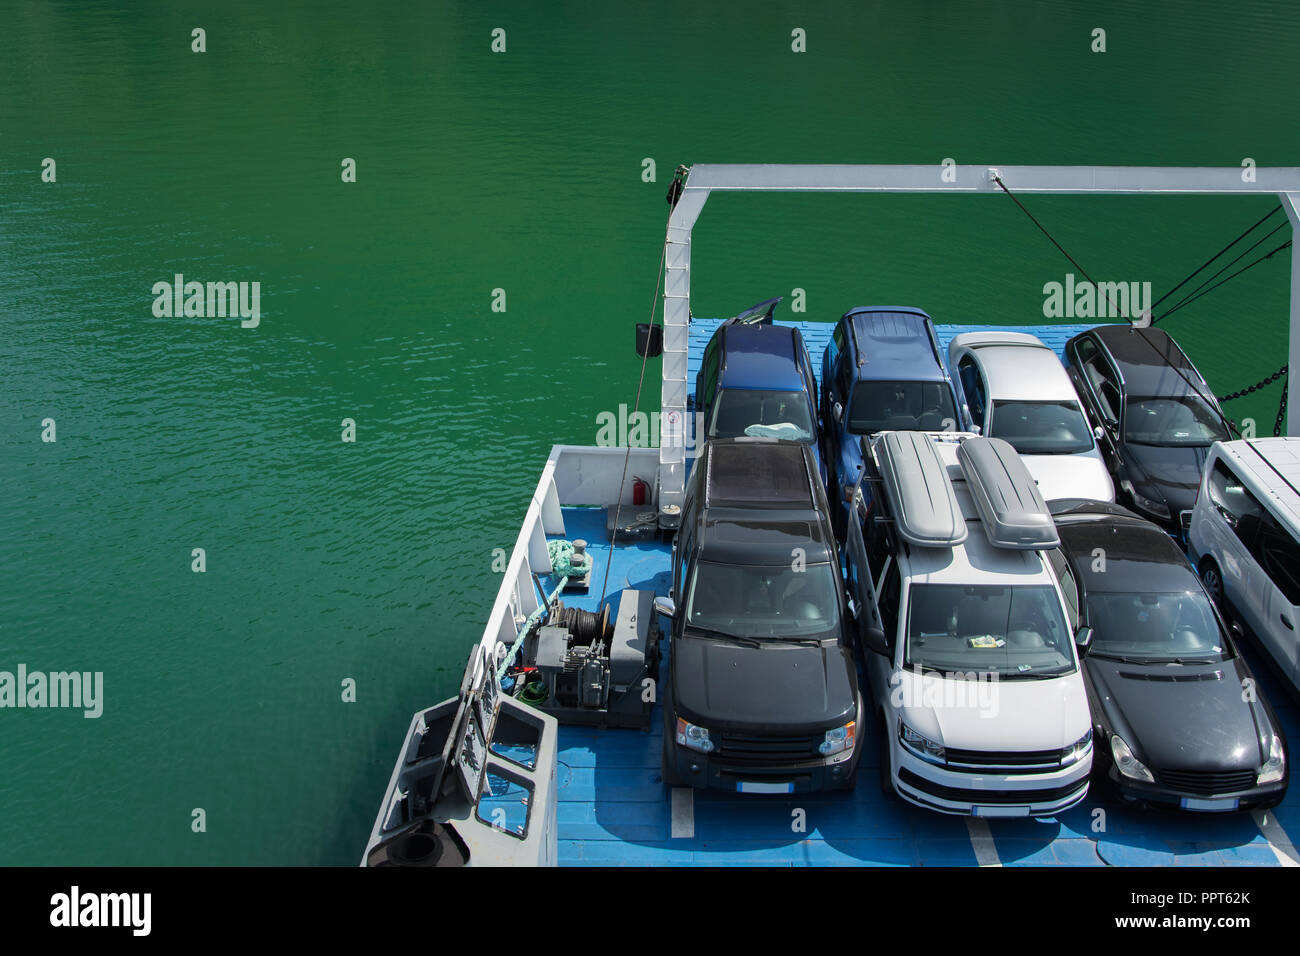 Vehicles parked on the ferry, space for text. Concepts - transportation and travel in security, support during the trip for all types of vehicles - Stock Image